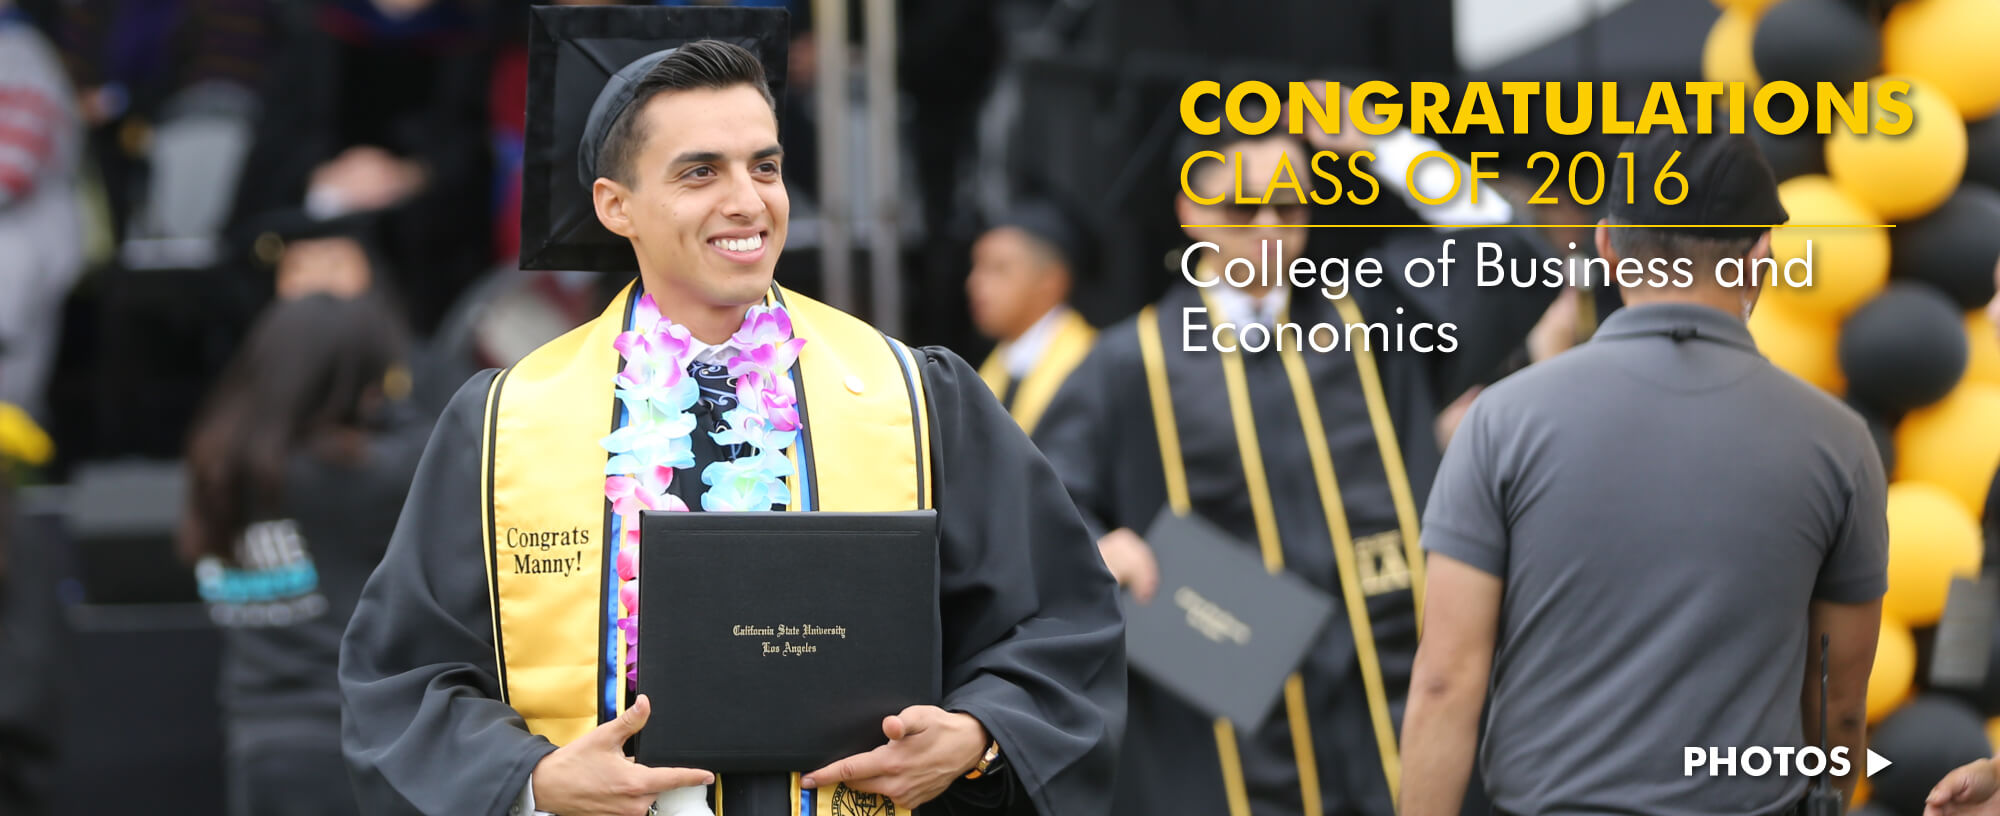 Congratulations Class of 2016: College of Business and Economics